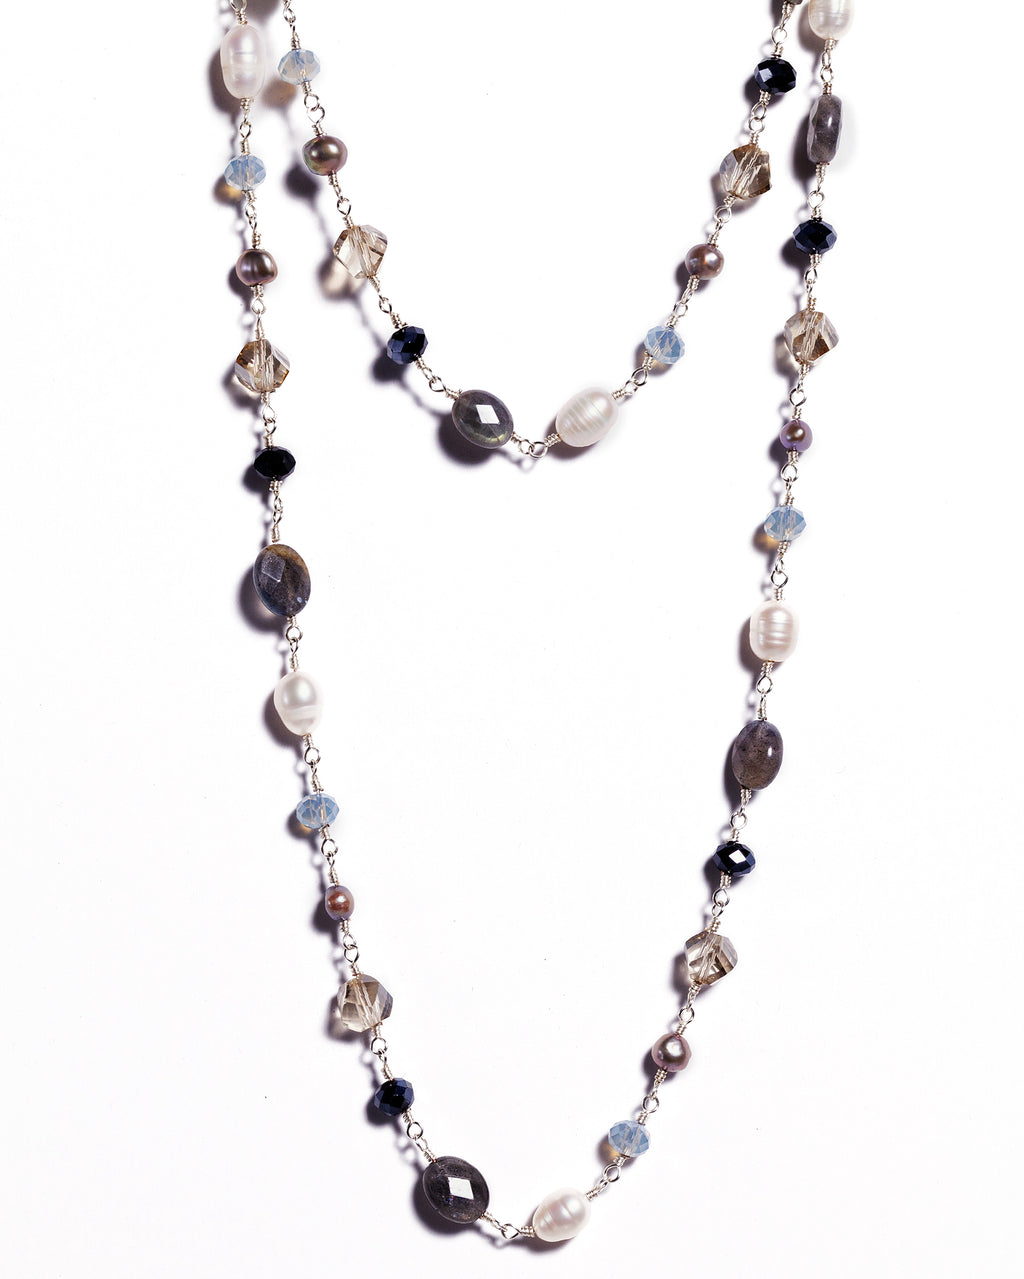 Necklace - Antika - Labradorite & Pearl Gemstone (and other colors)